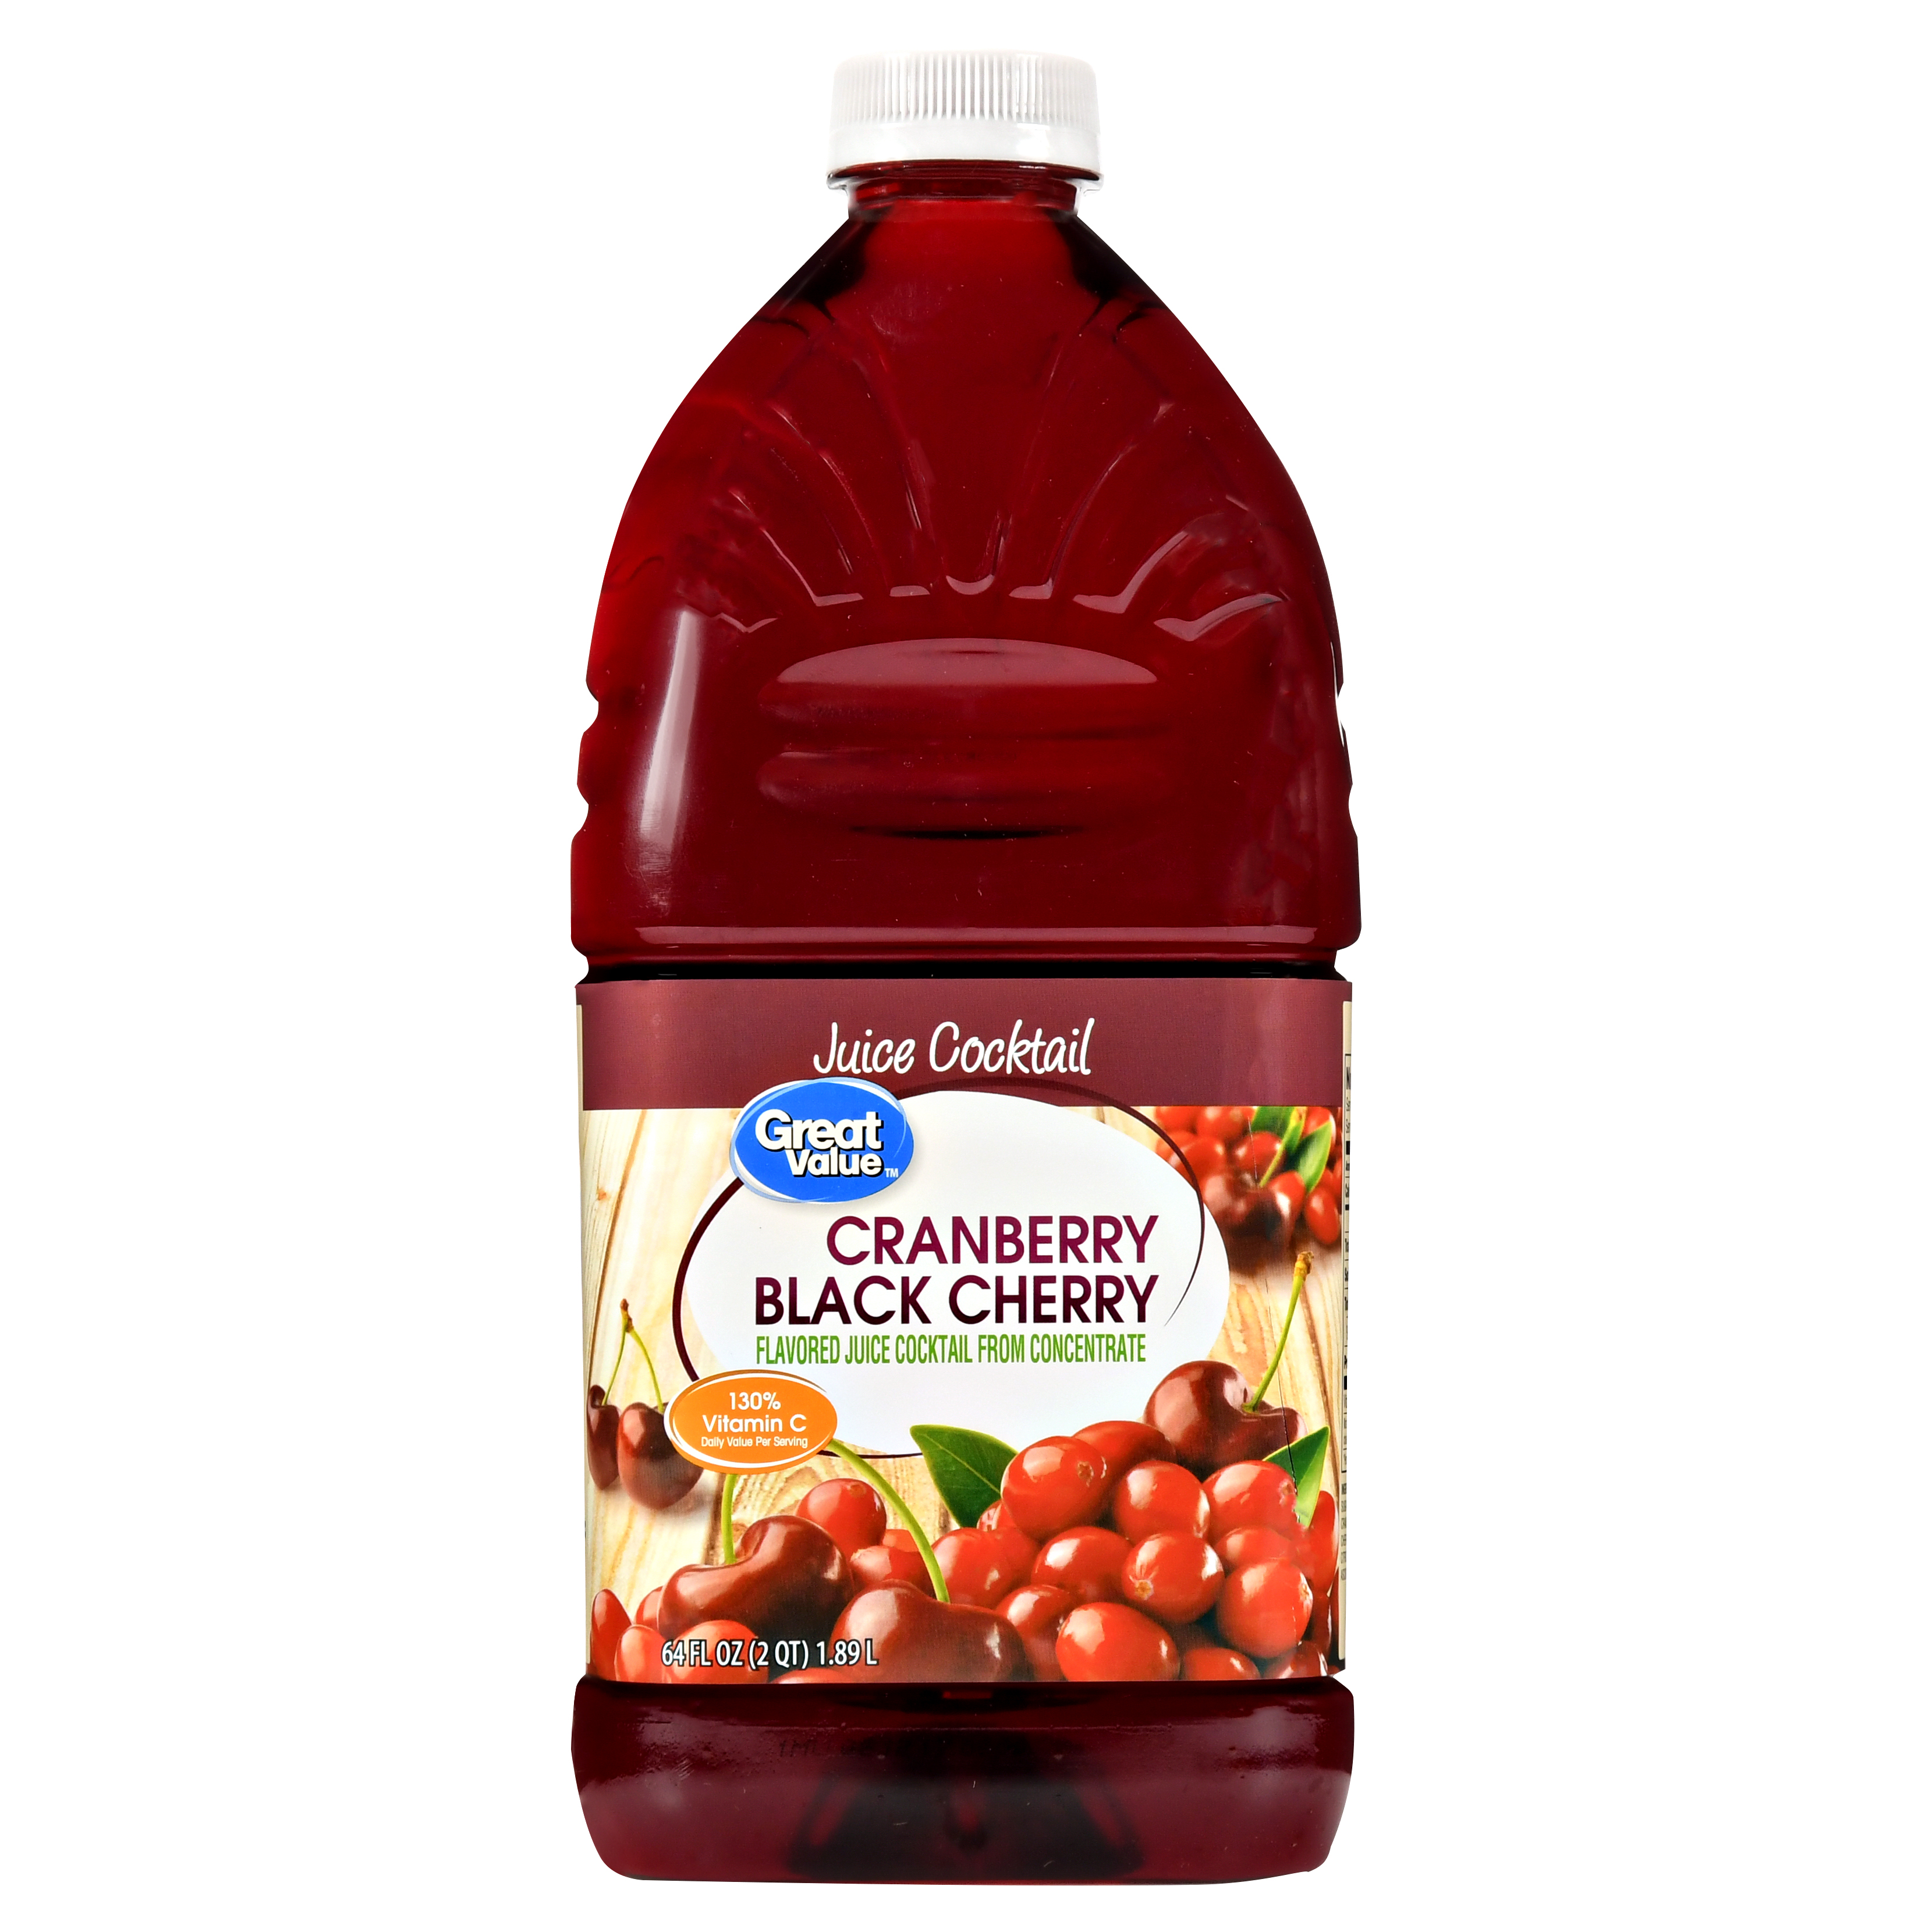 (2 Pack) Great Value Juice Cocktail, Cranberry Black